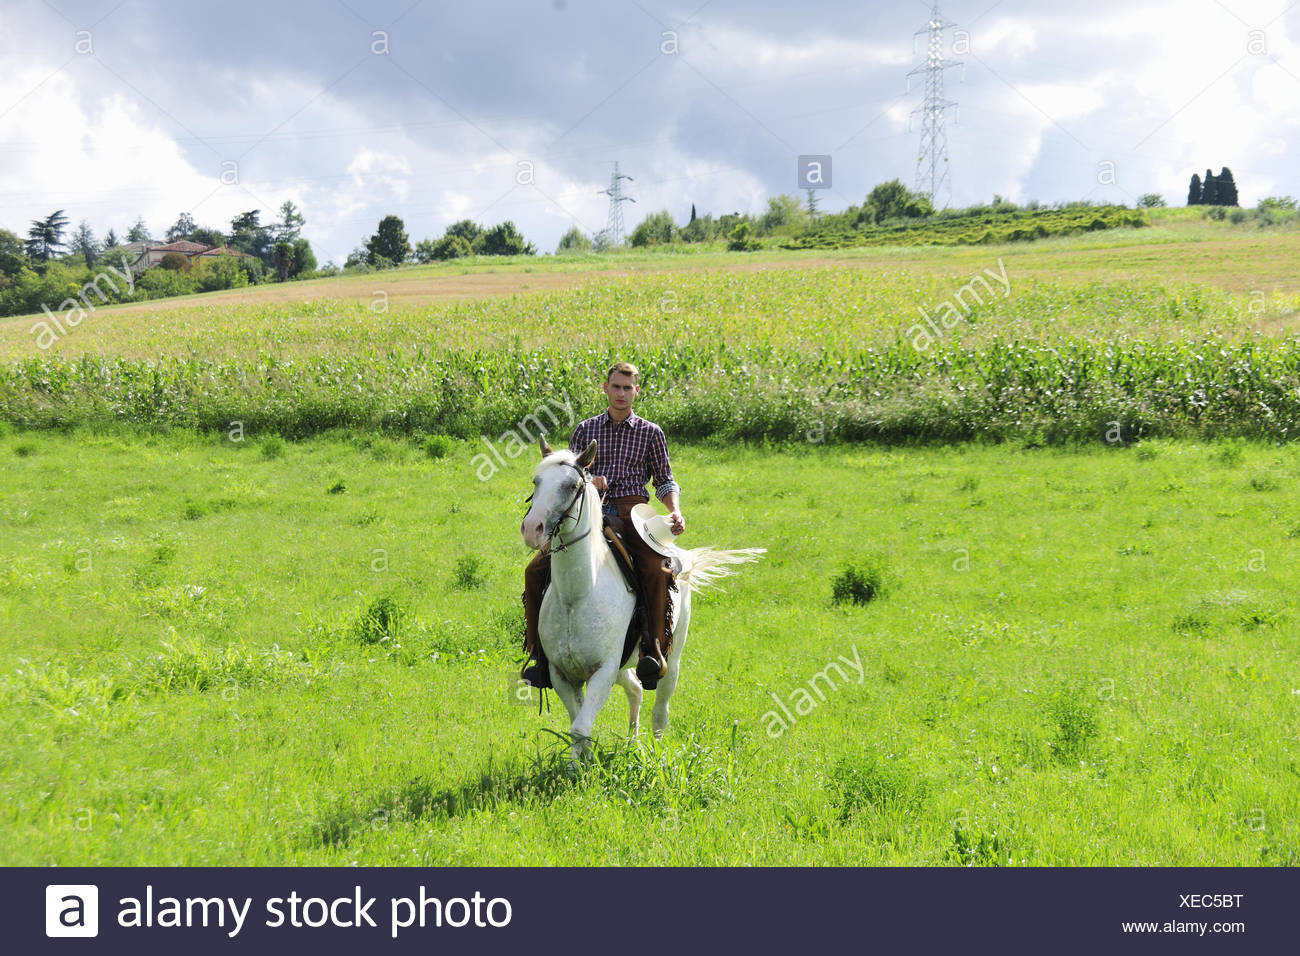 Young man holding cowboy hat galloping on horse in field - Stock Image